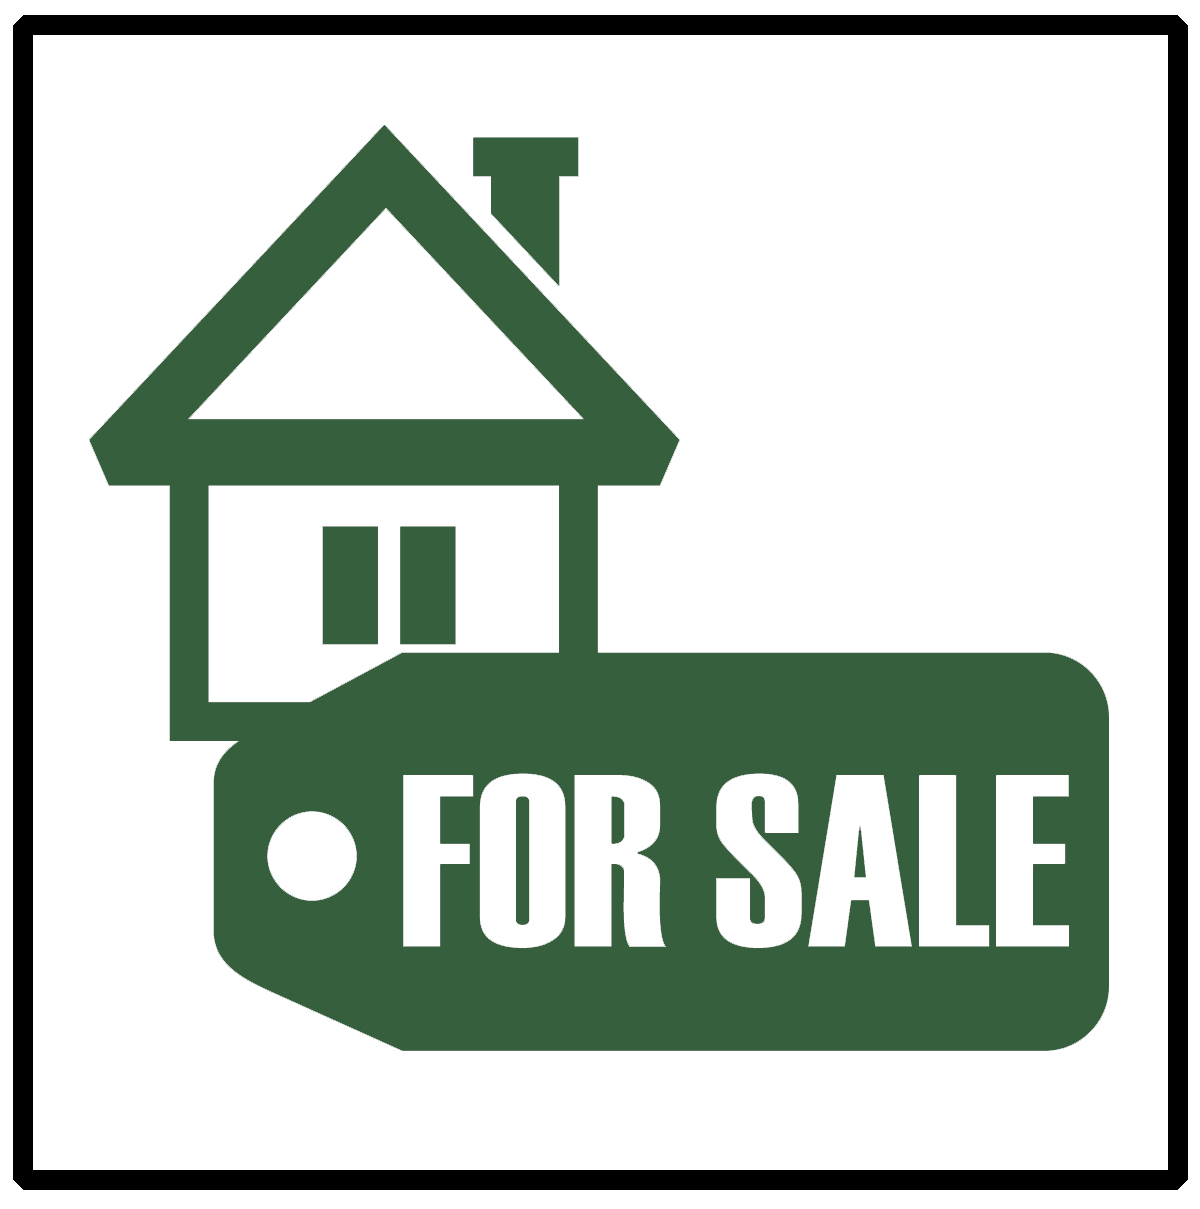 Icon showing house for sale sign for prelisting home inspection Services